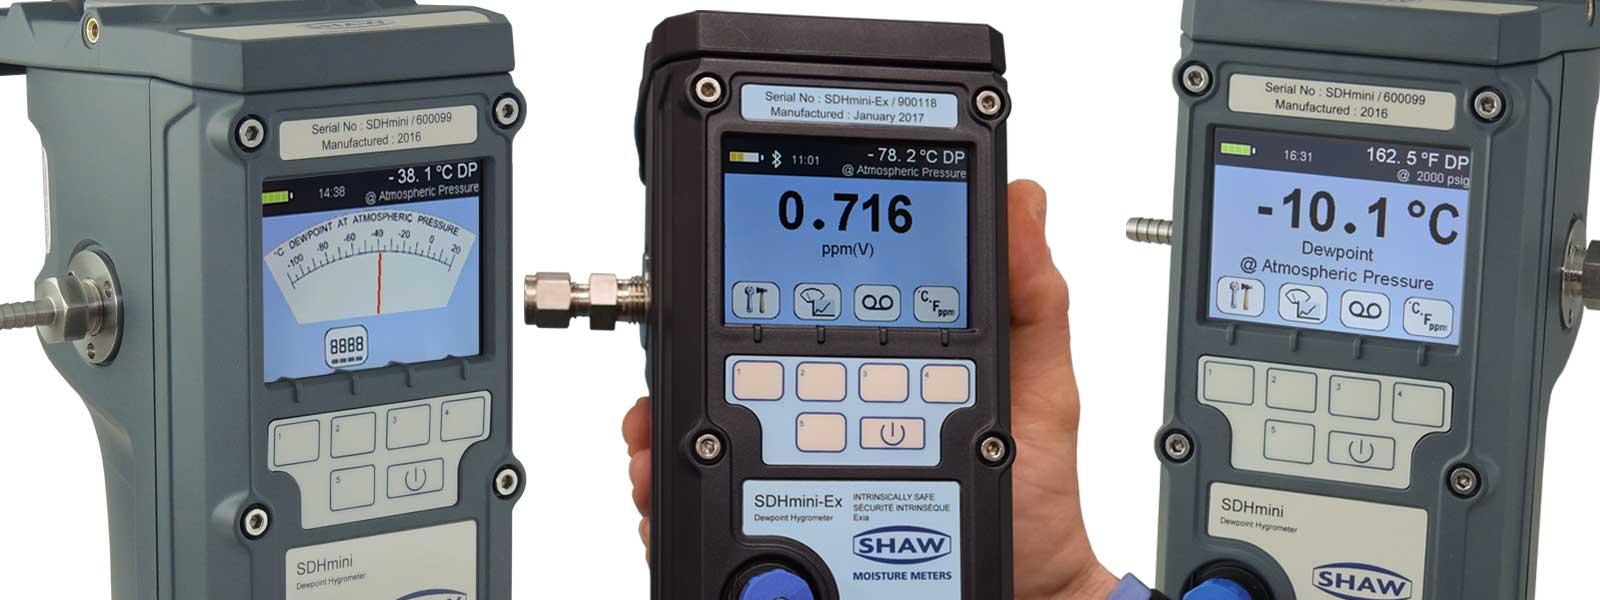 Shaw Moisture Meters expands its range of portable dewpoint meters